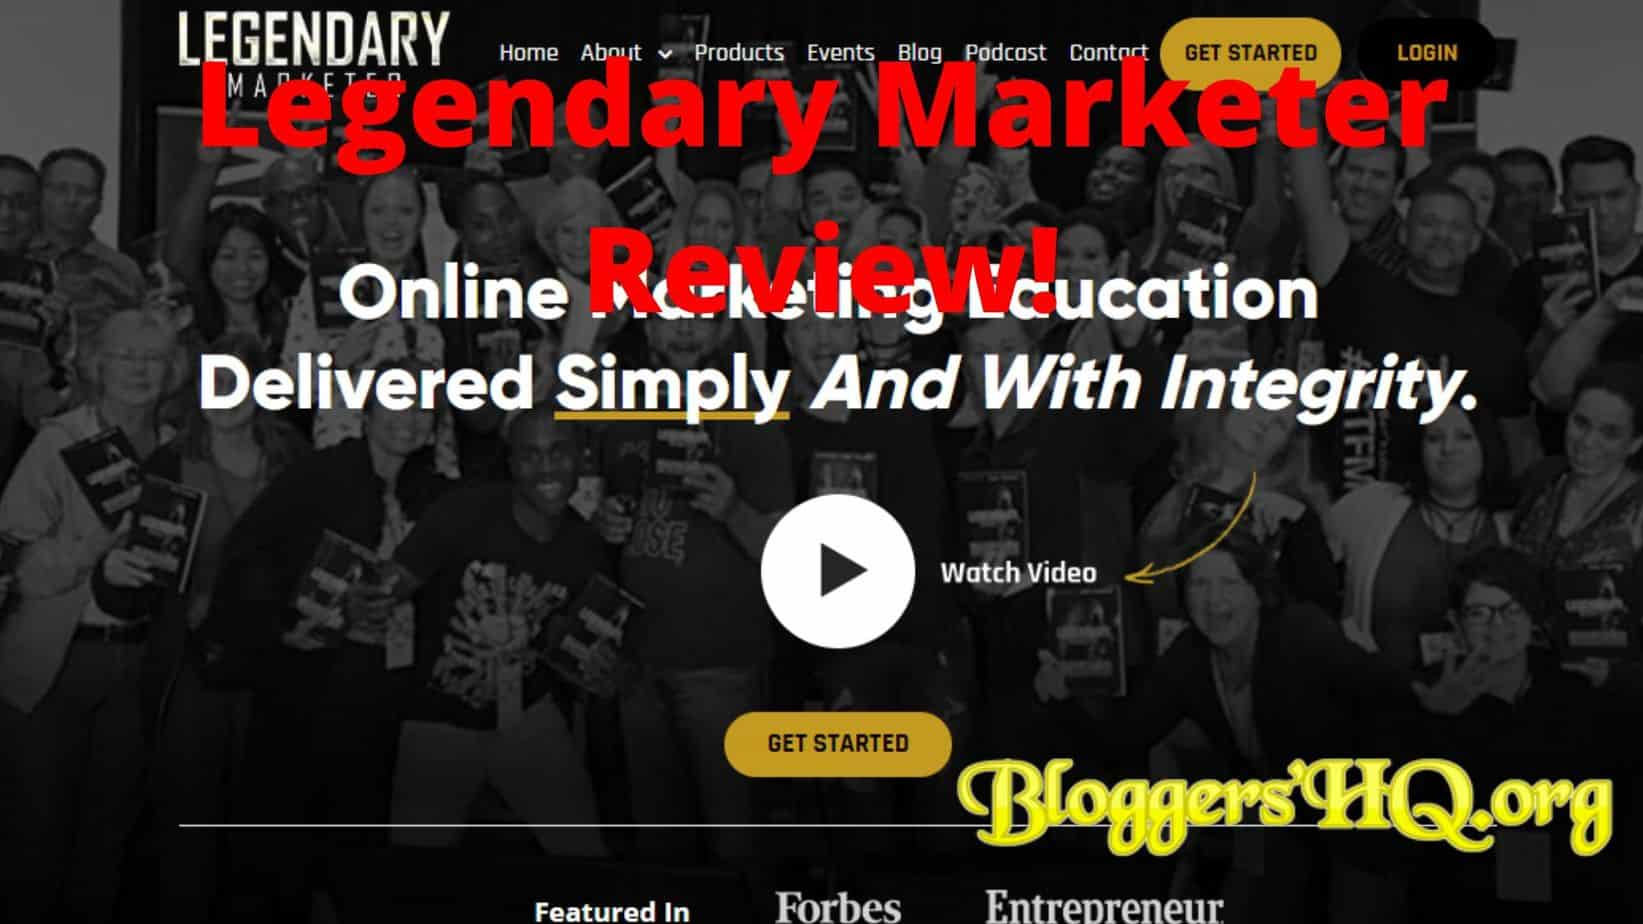 Legendary Marketer Internet Marketing Program Cheapest Deal